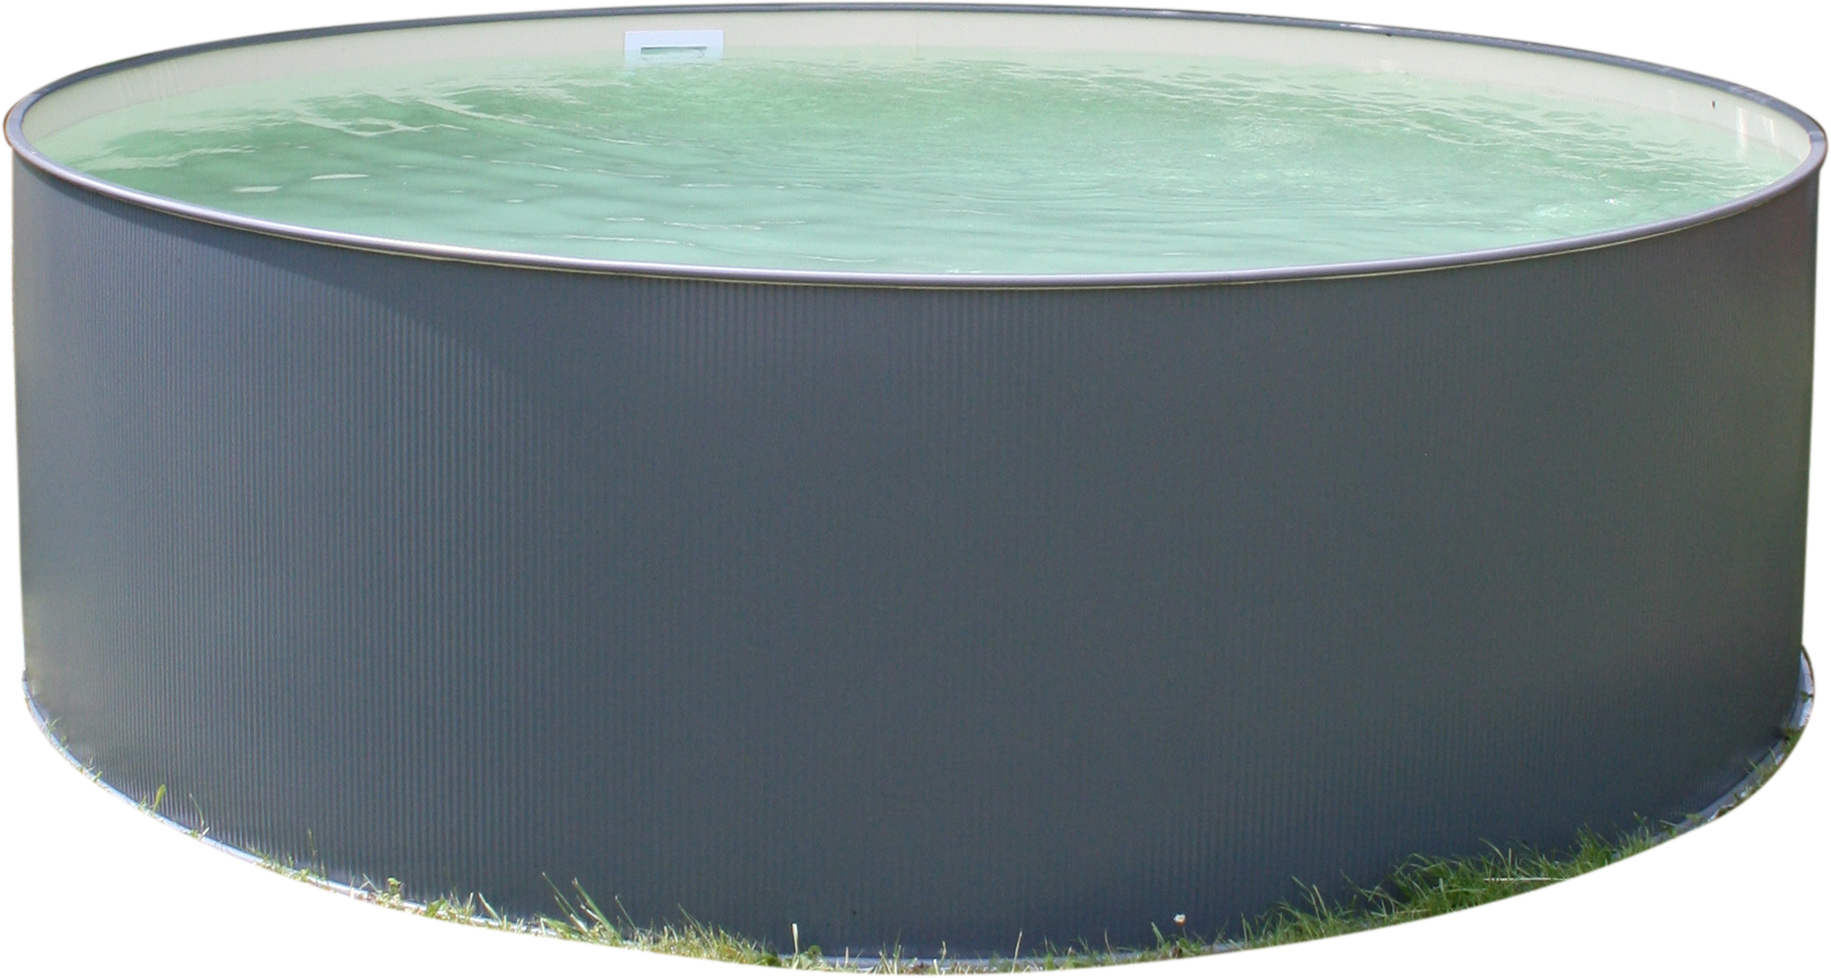 PLANET POOL Rundbecken-Set Anthrazit 450x90cm, 3 teilig